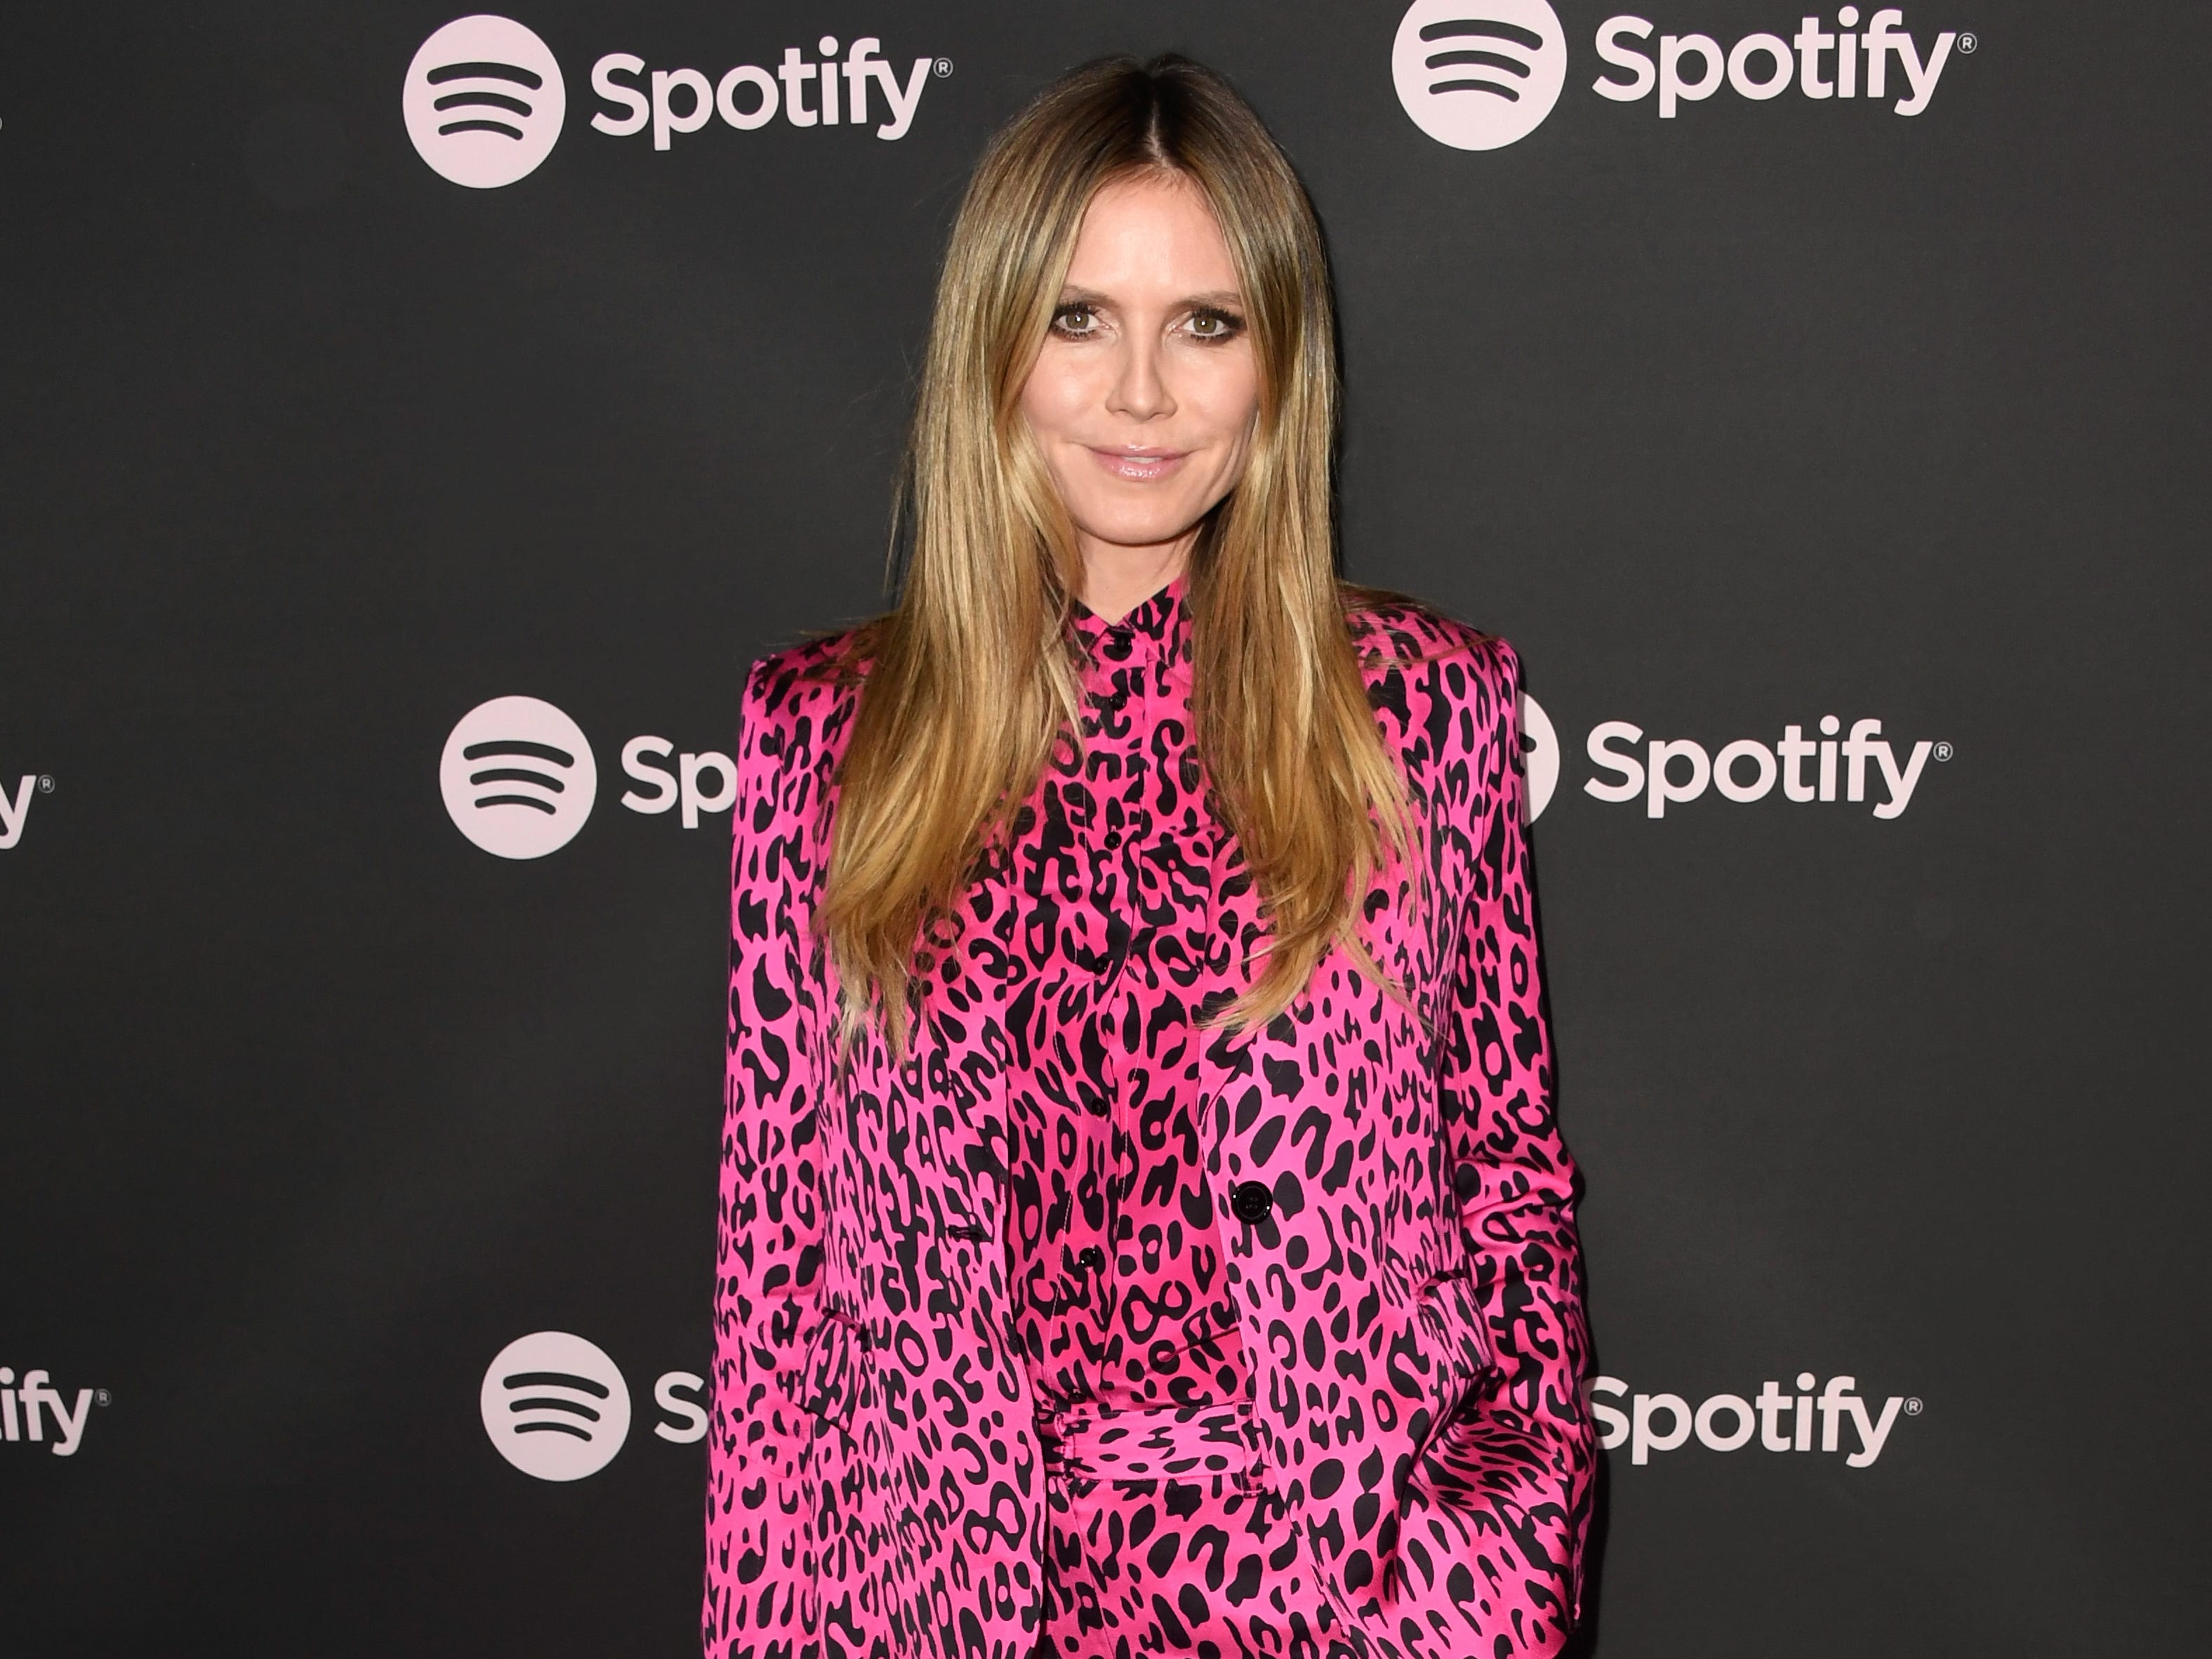 "LOS ANGELES, CA - FEBRUARY 07:  Heidi Klum attends Spotify ""Best New Artist 2019"" event at Hammer Museum on February 7, 2019 in Los Angeles, California.  (Photo by Frazer Harrison/Getty Images for Spotify) ORG XMIT: 775293448 ORIG FILE ID: 1095262732"